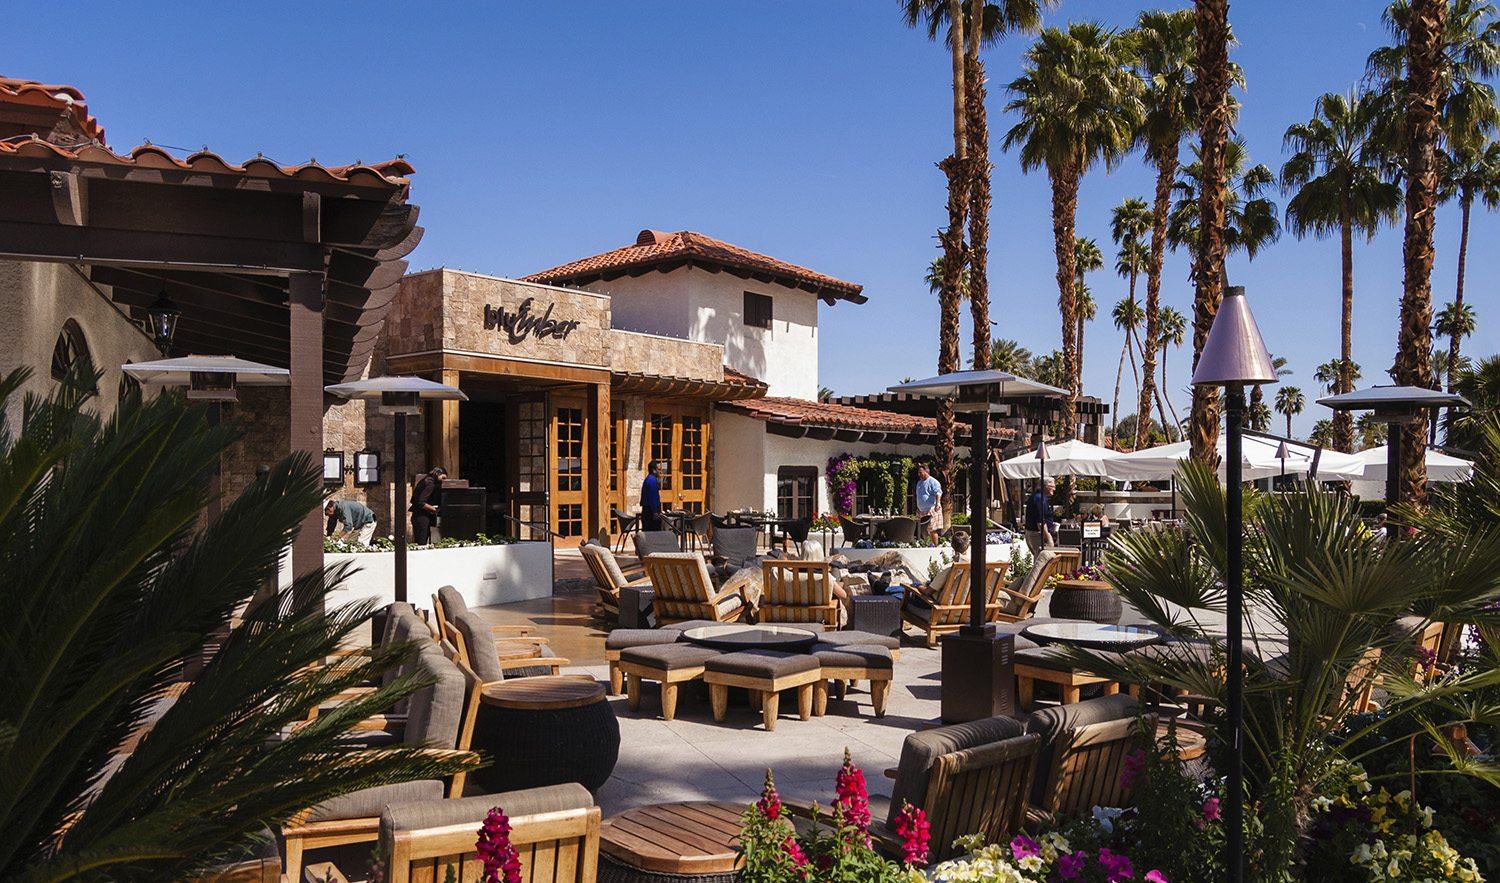 Rancho Las Palmas resort in Palm Springs, CA